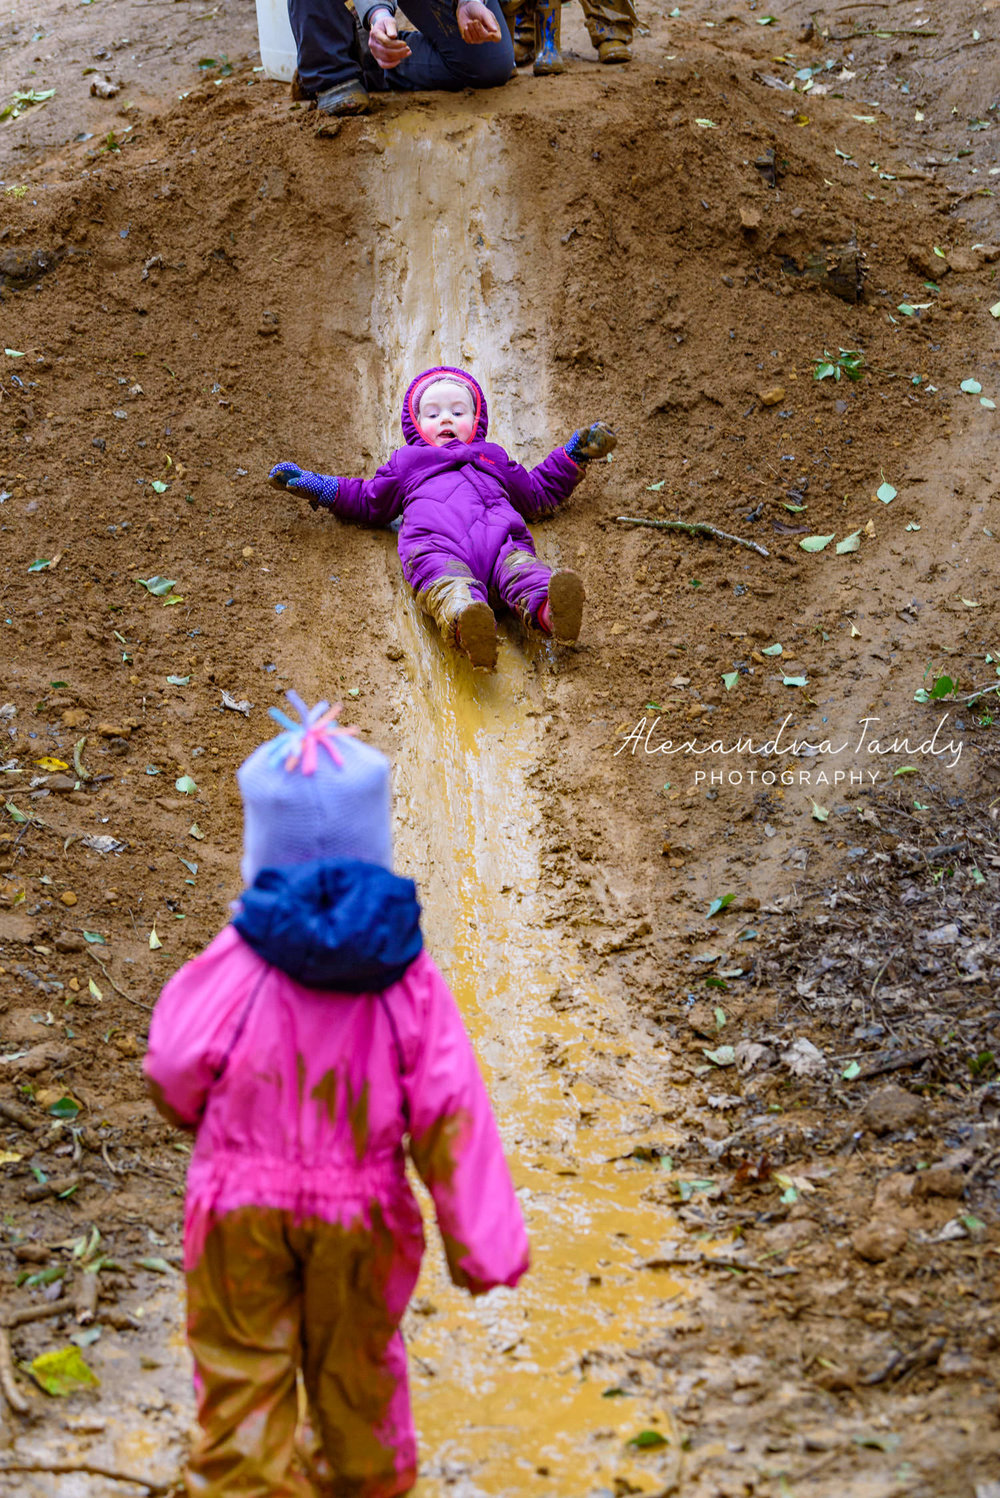 Alexandra-Tandy-Photography-two-toddler-girls-playing-on-mud-slide-at-forest-school.jpg